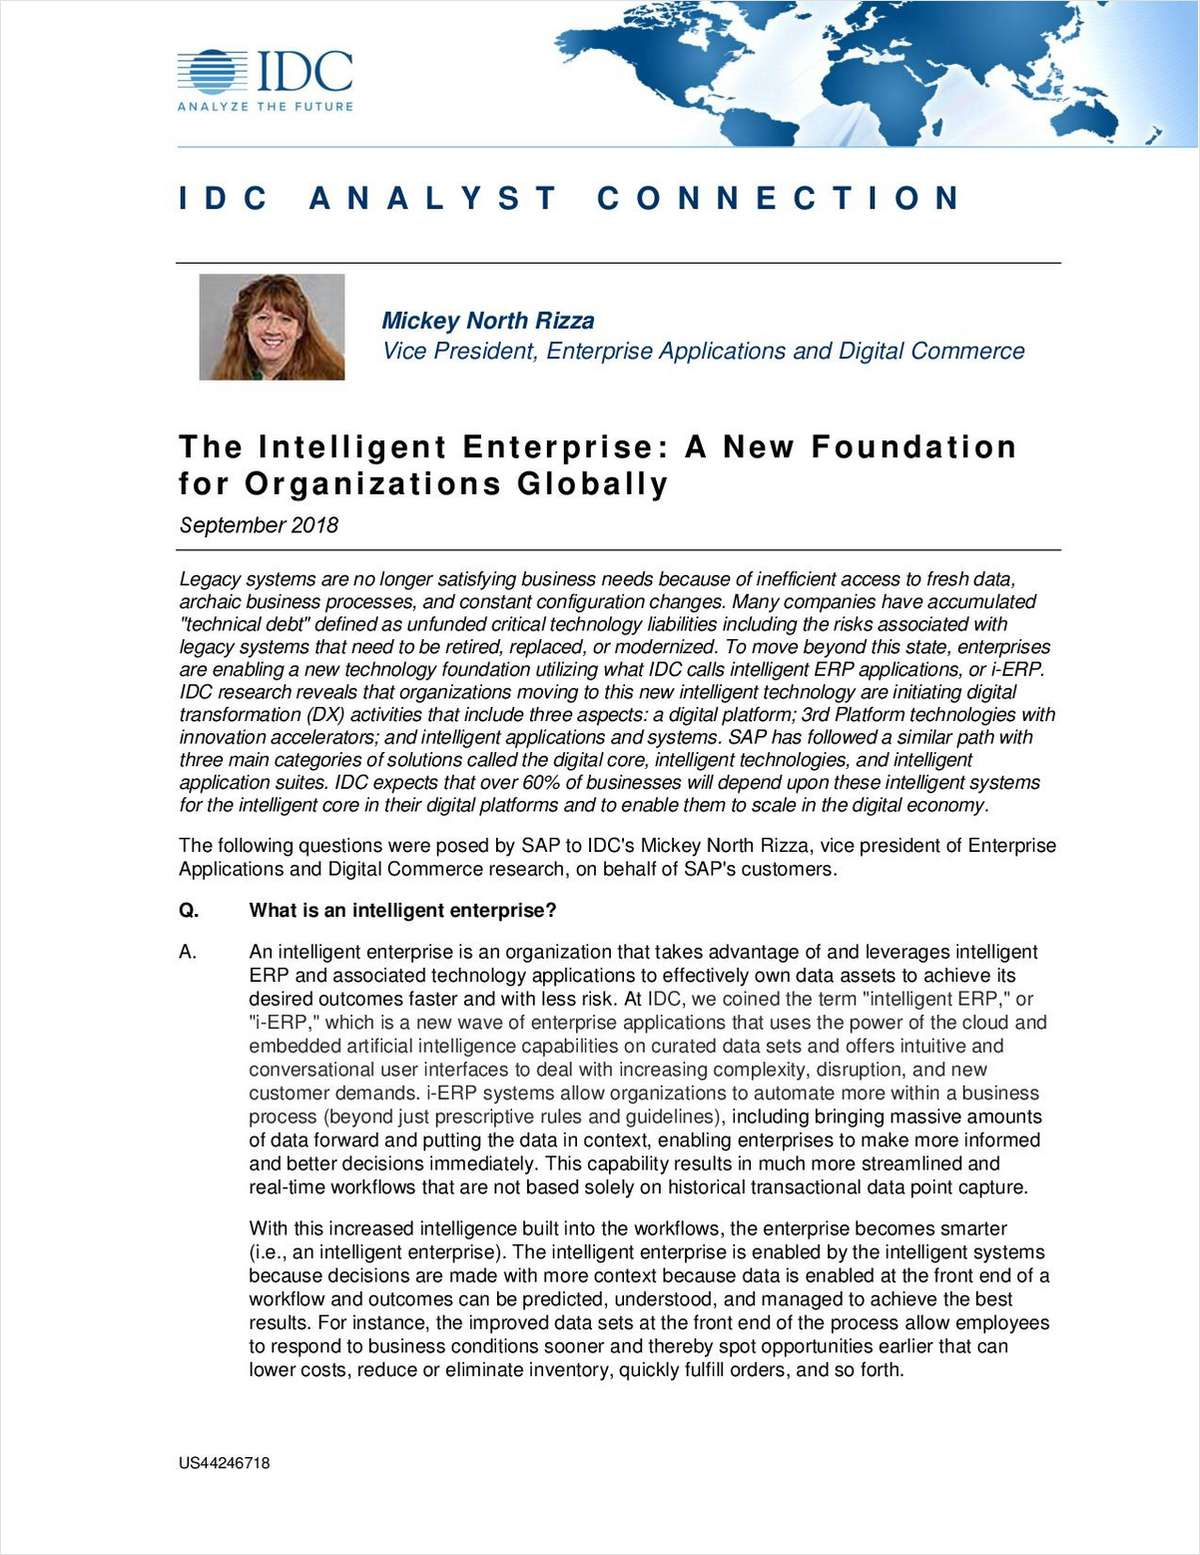 The Intelligent Enterprise : A New Foundation for Organizations Globally